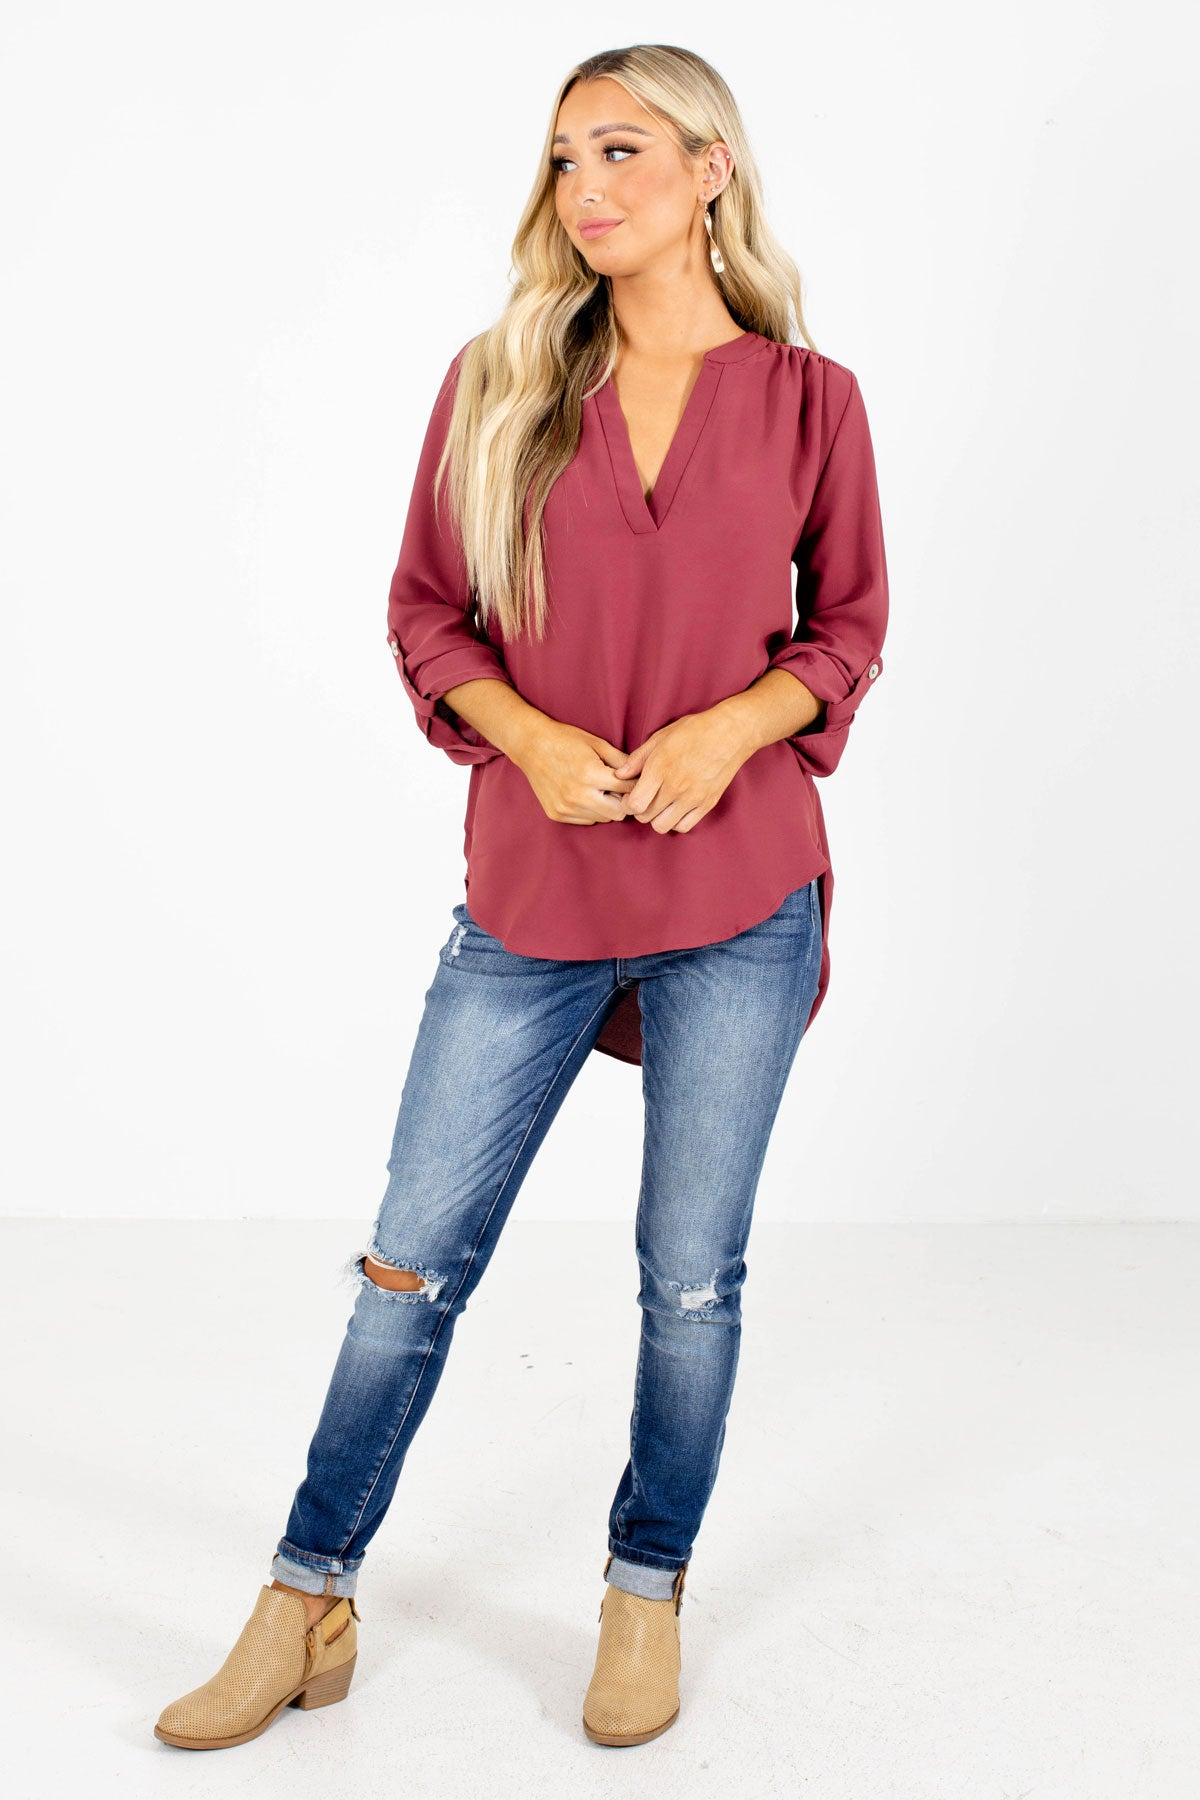 Red Blouse Women Boutique Clothing